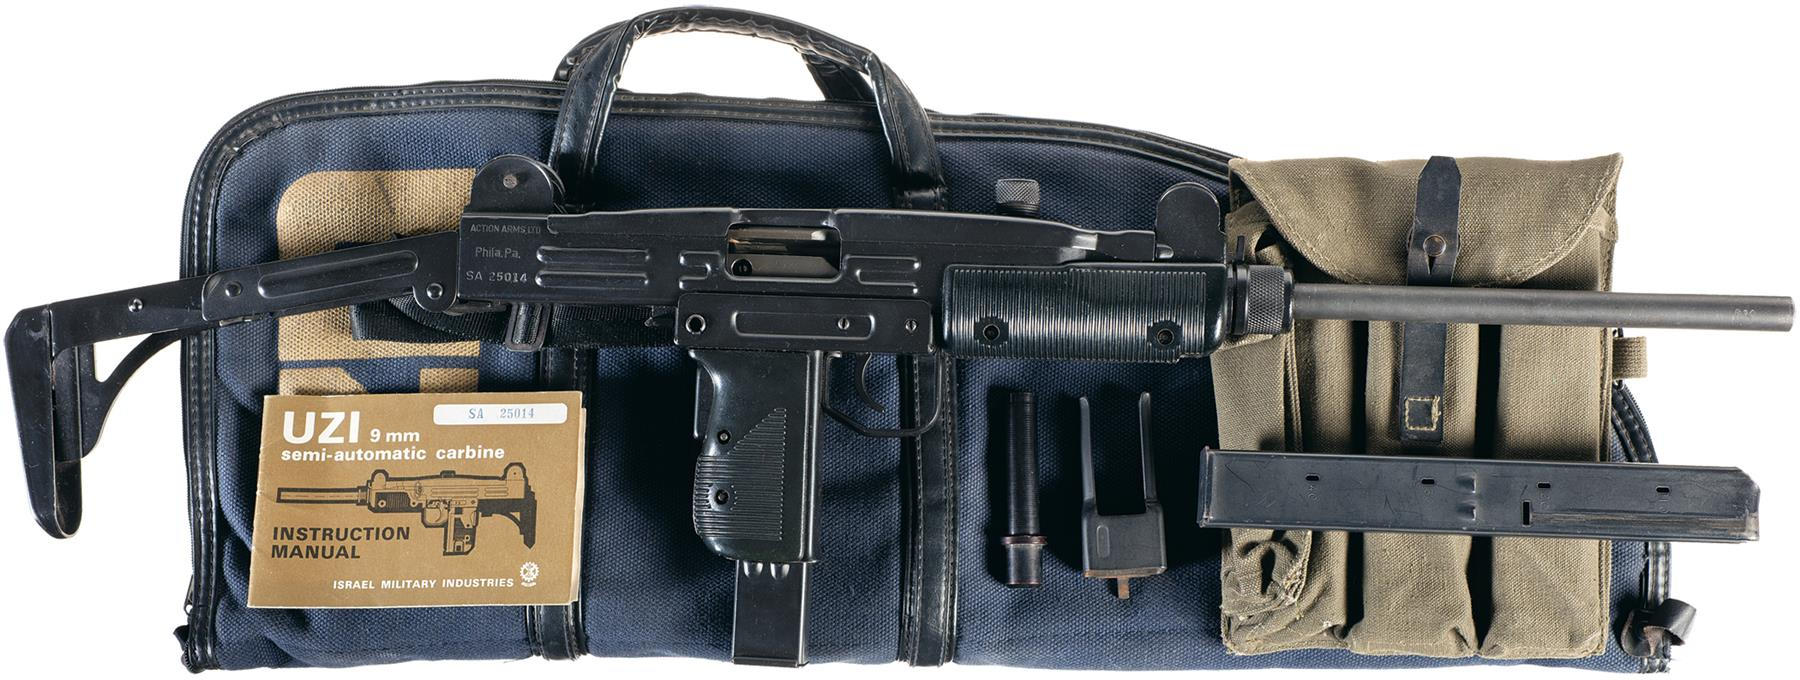 For sale trade imi uzi carbine made in israel 9mm - Sold For Uzi Israeli Military Industries A Carbine Go Full Screen